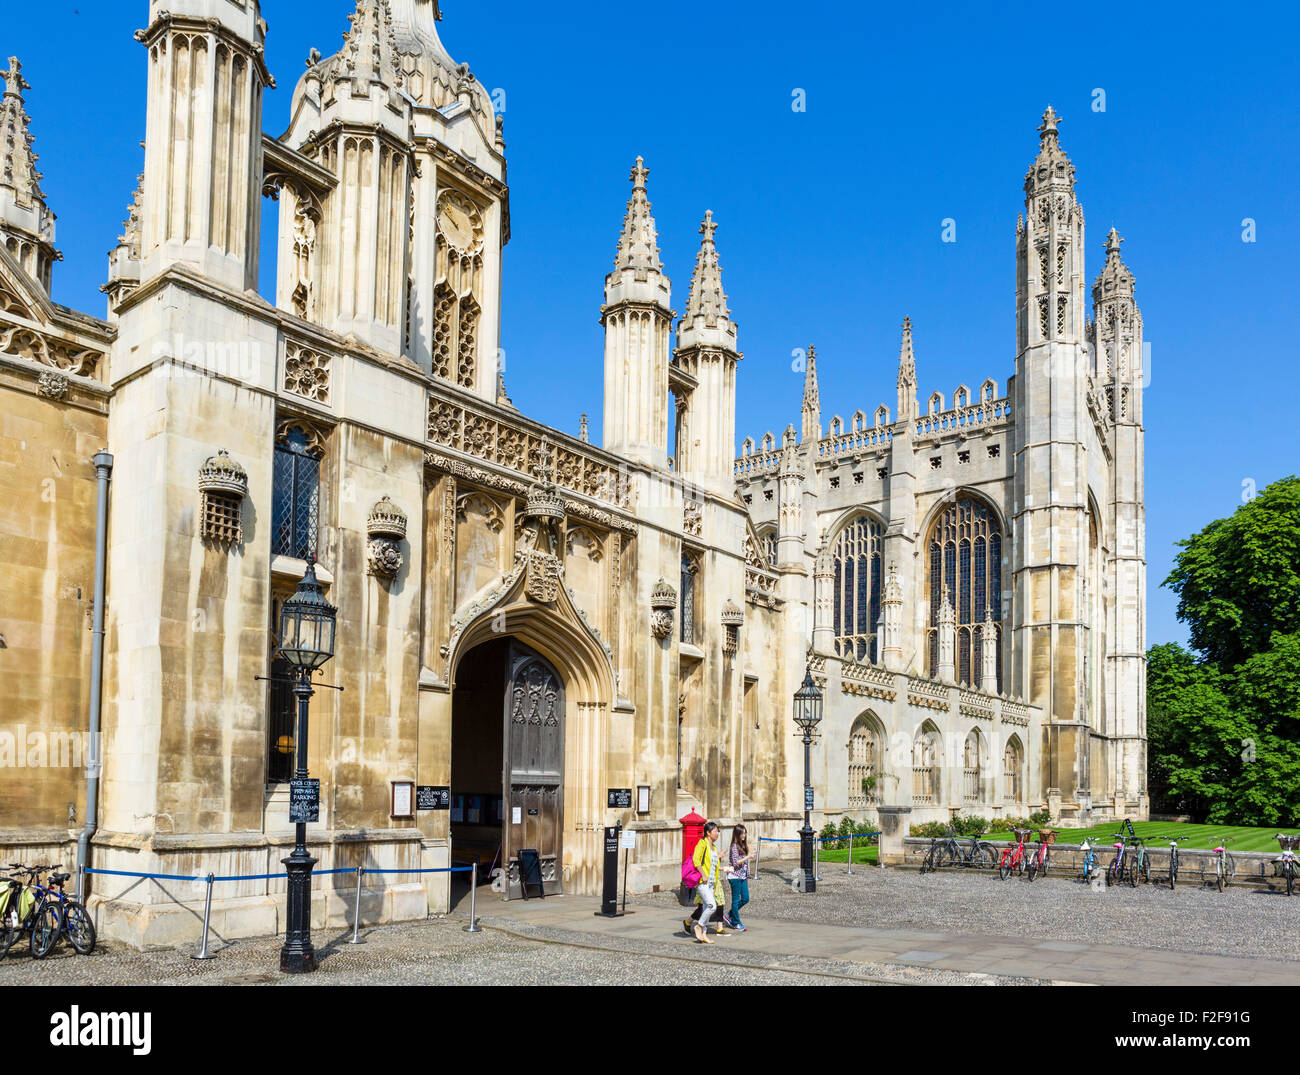 The entrance to King's College, Cambridge University, Cambridge, Cambridgeshire, England, UK - Stock Image